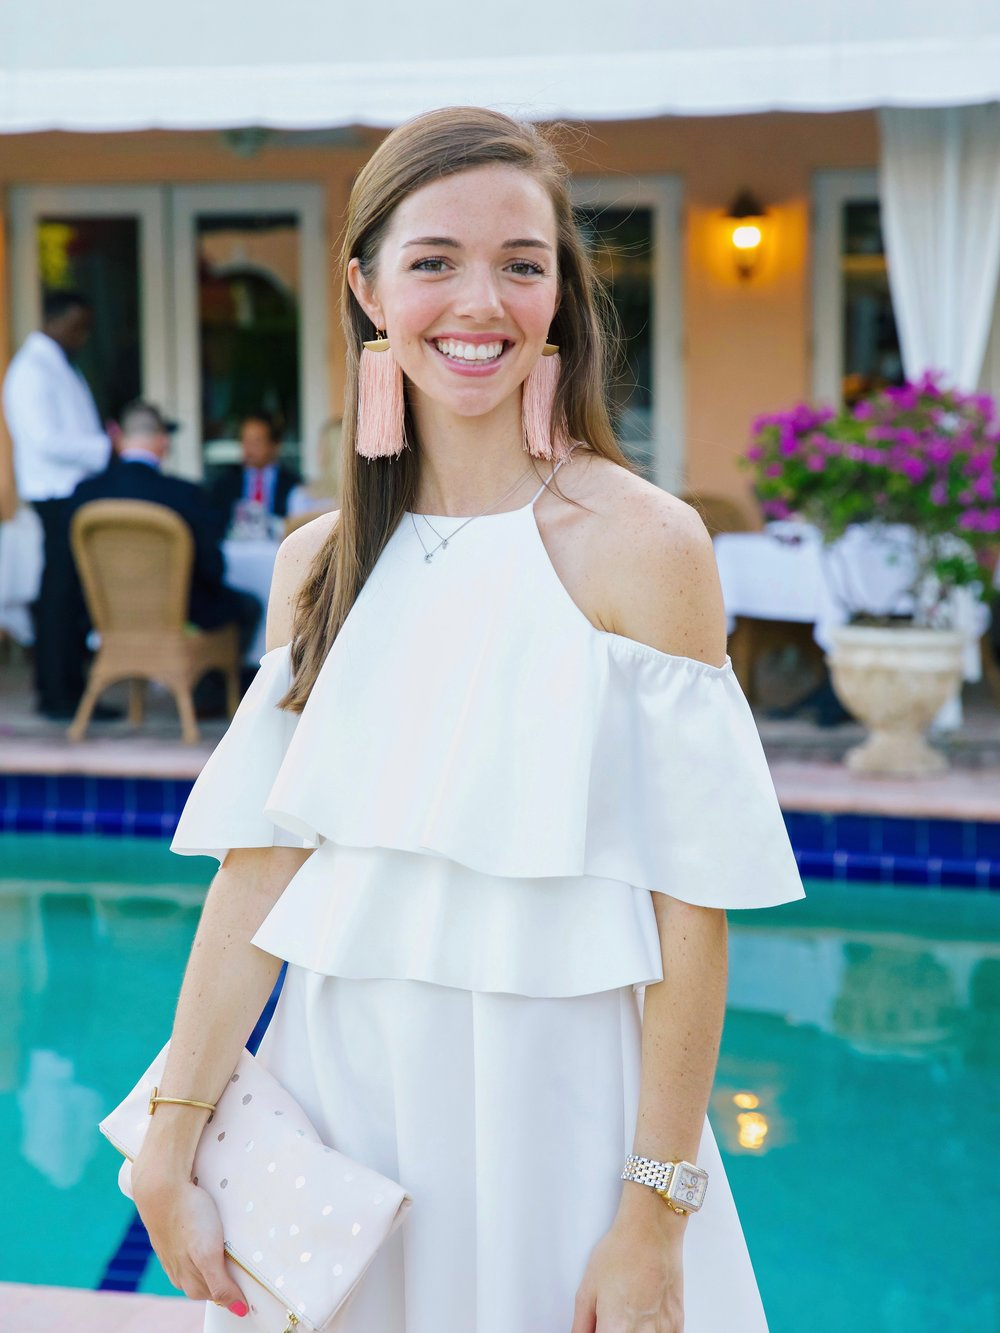 LCB STYLE FASHION BLOGGER COLONY HOTEL PALM BEACH-1.jpg